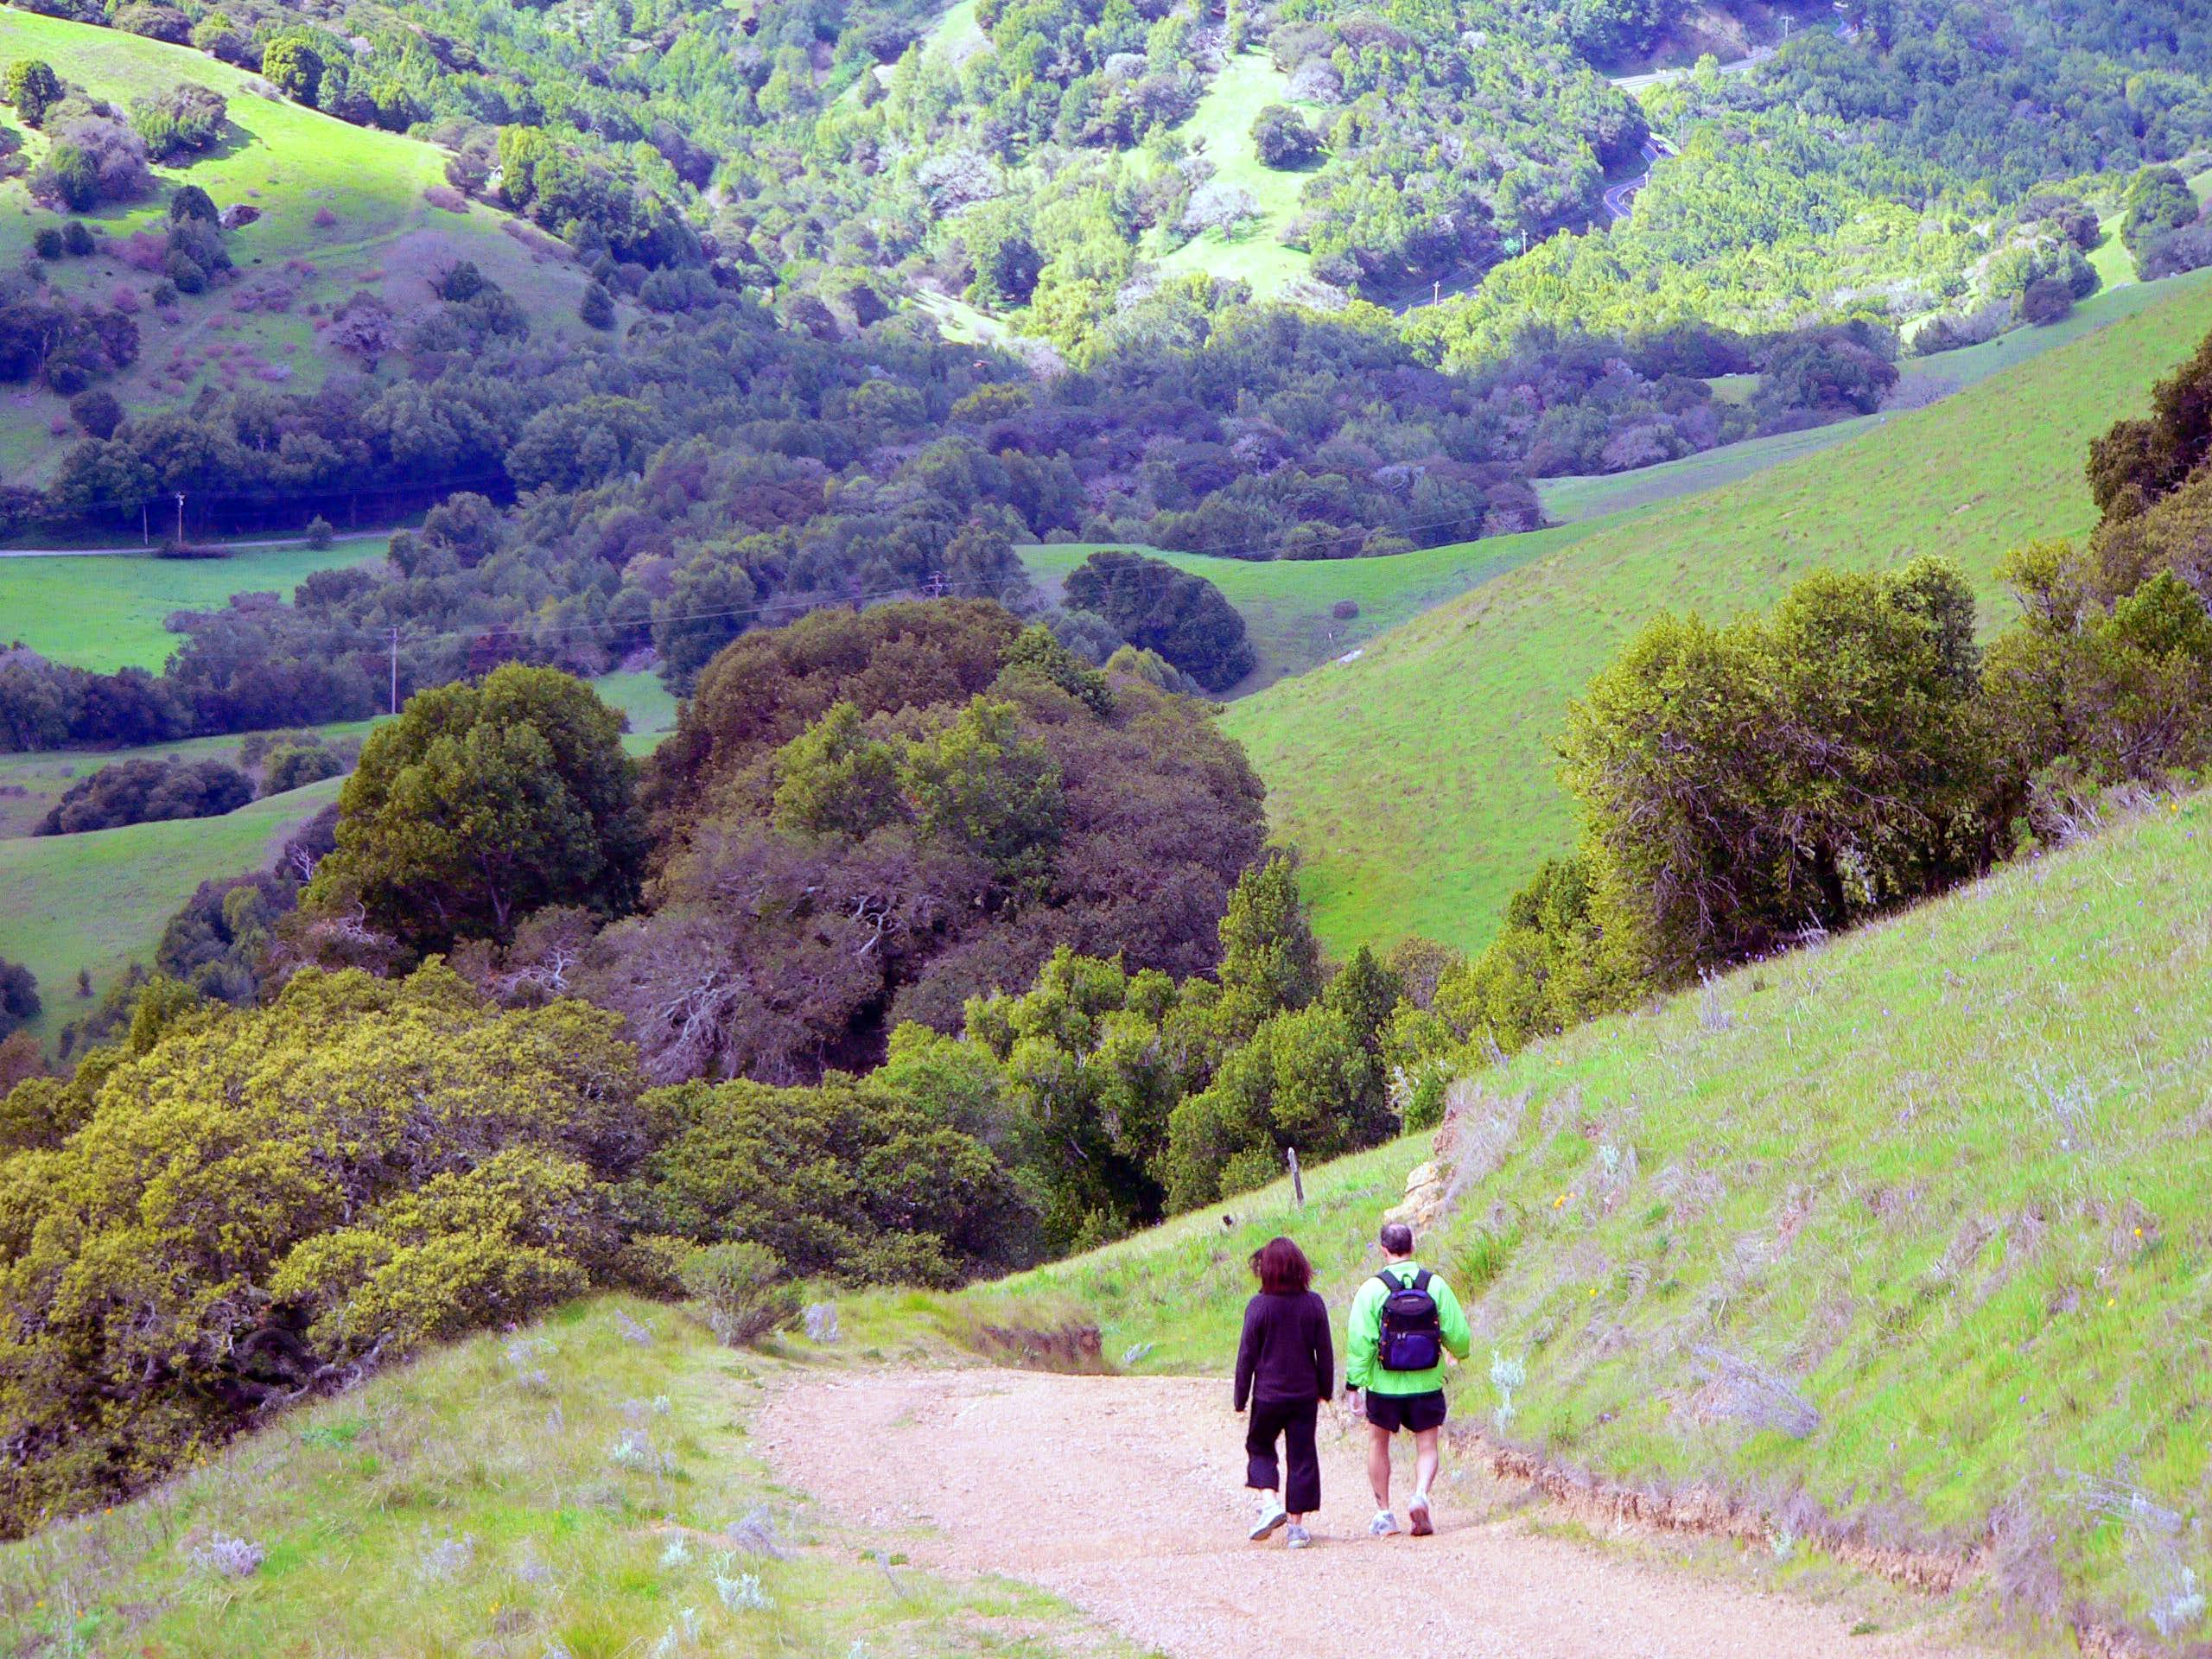 Hills of Marin County, California